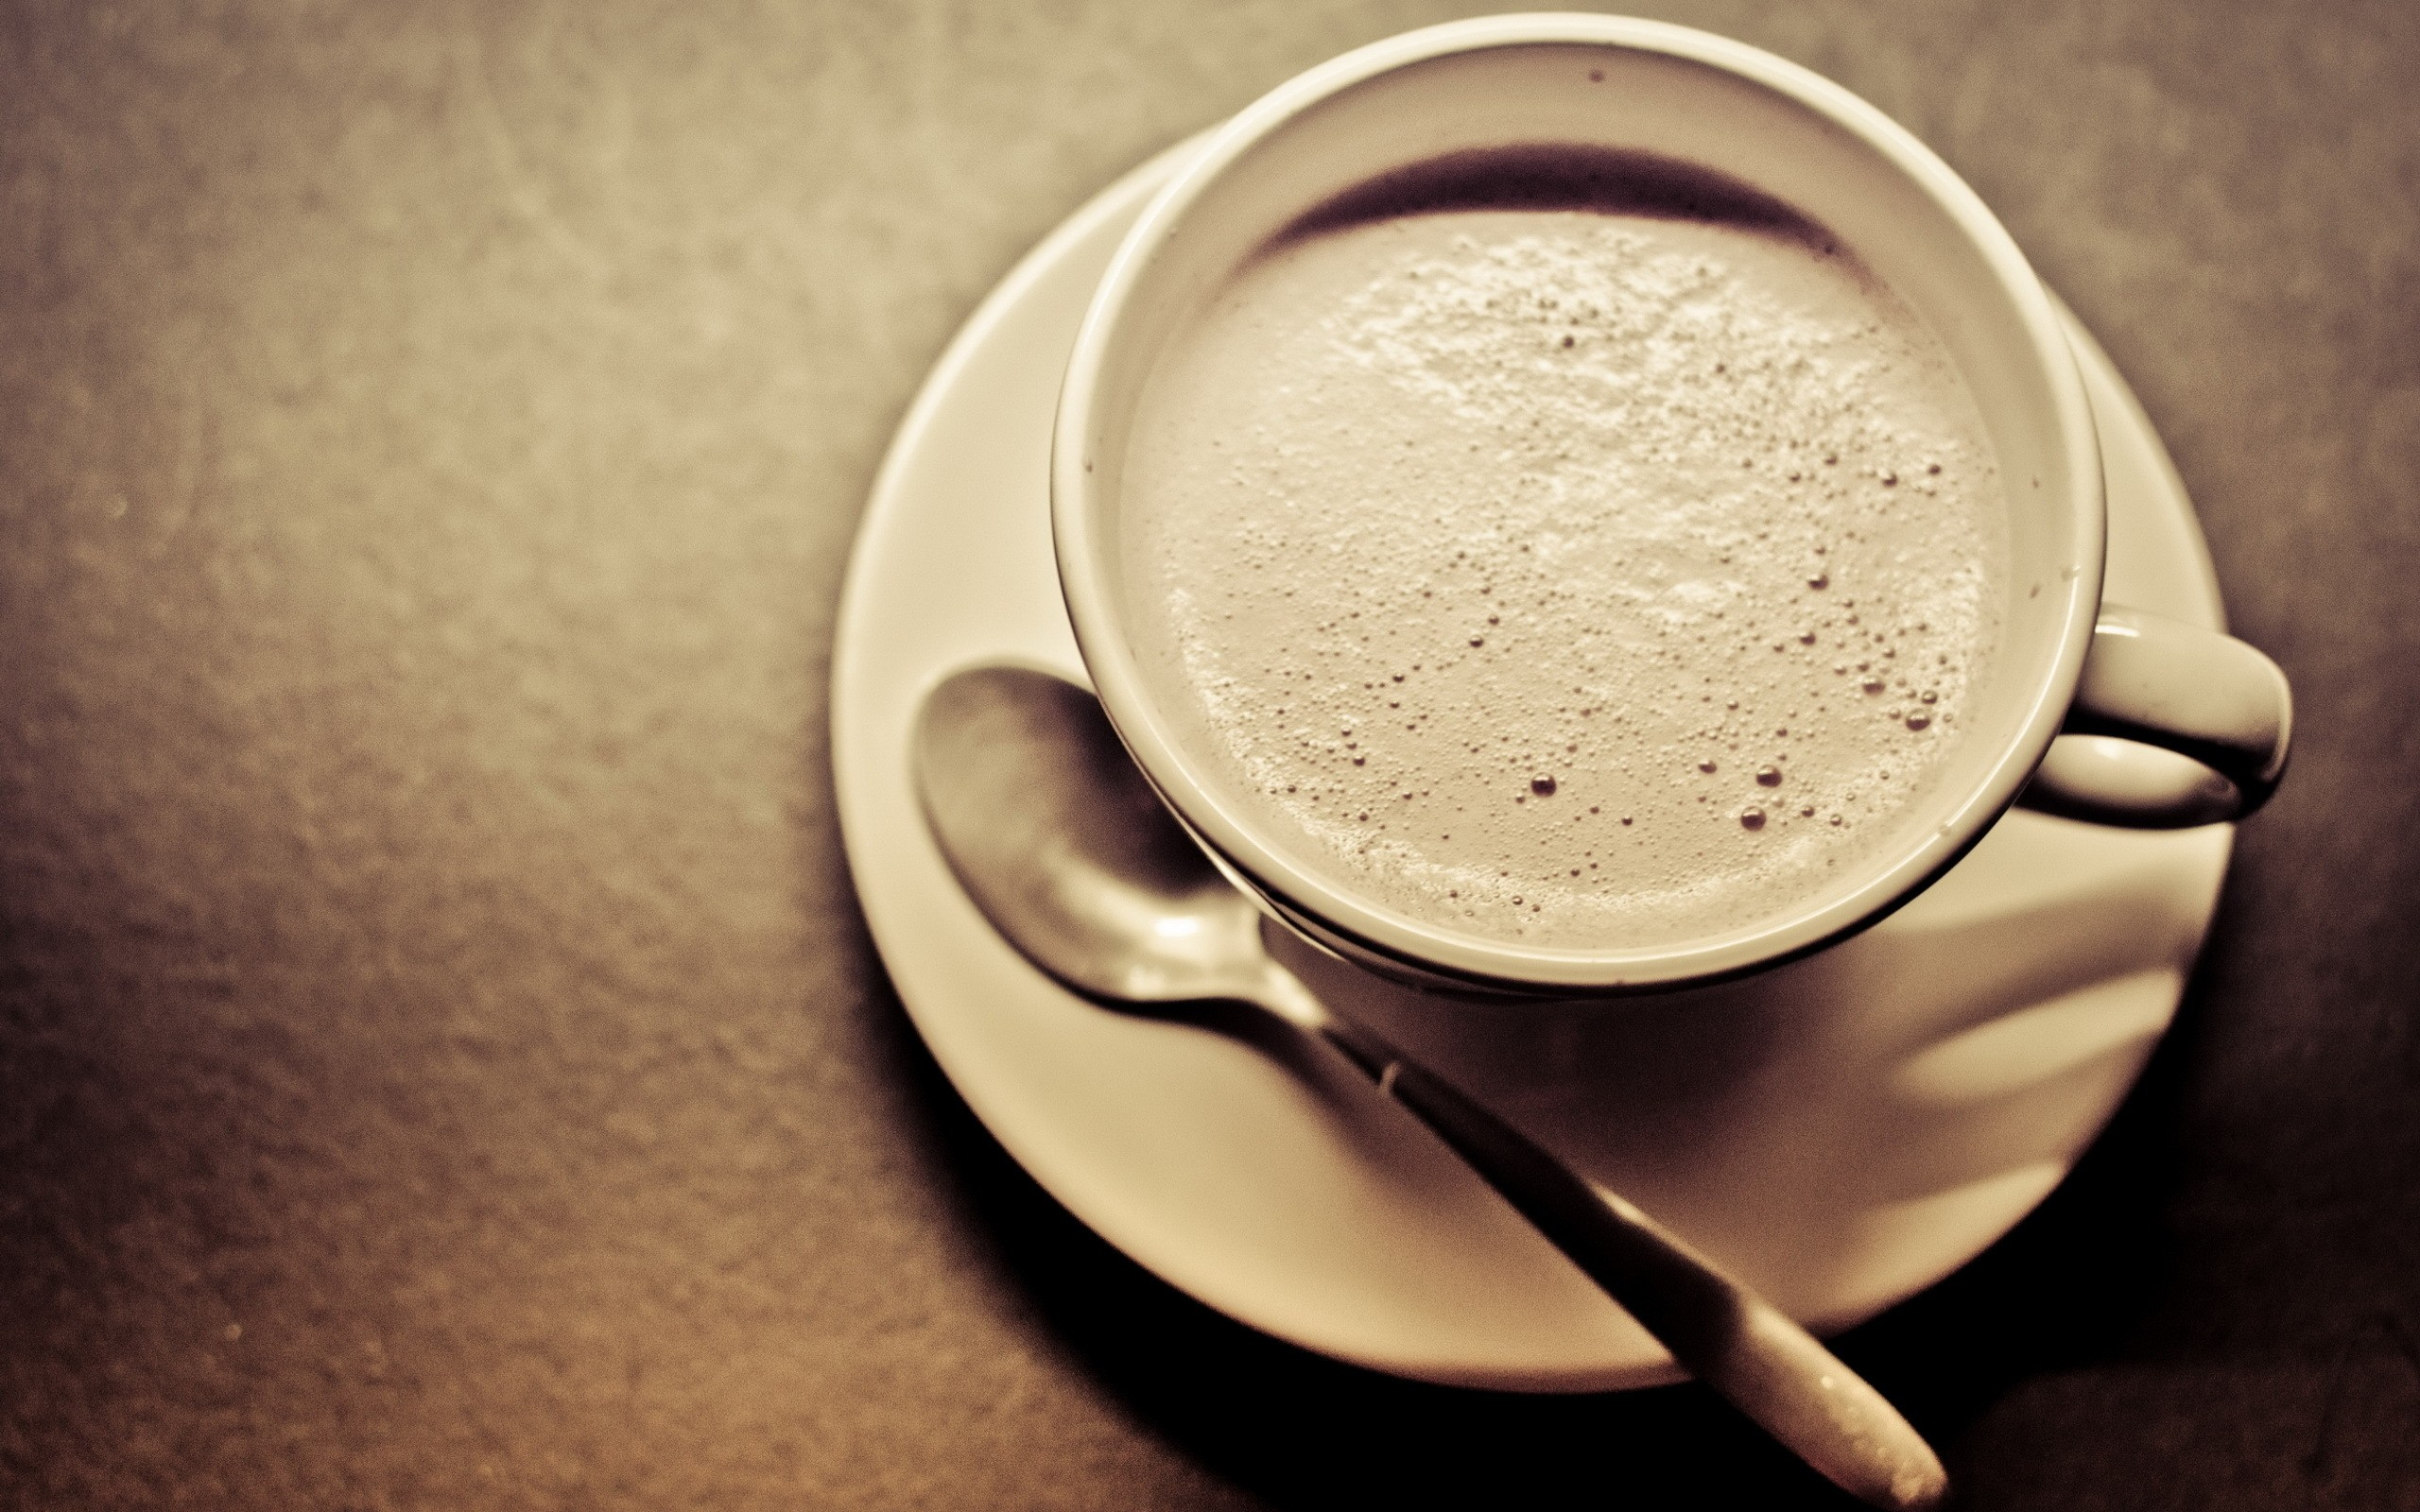 Download Coffee Cup Wallpaper 38727 2560x1600 px High 2560x1600